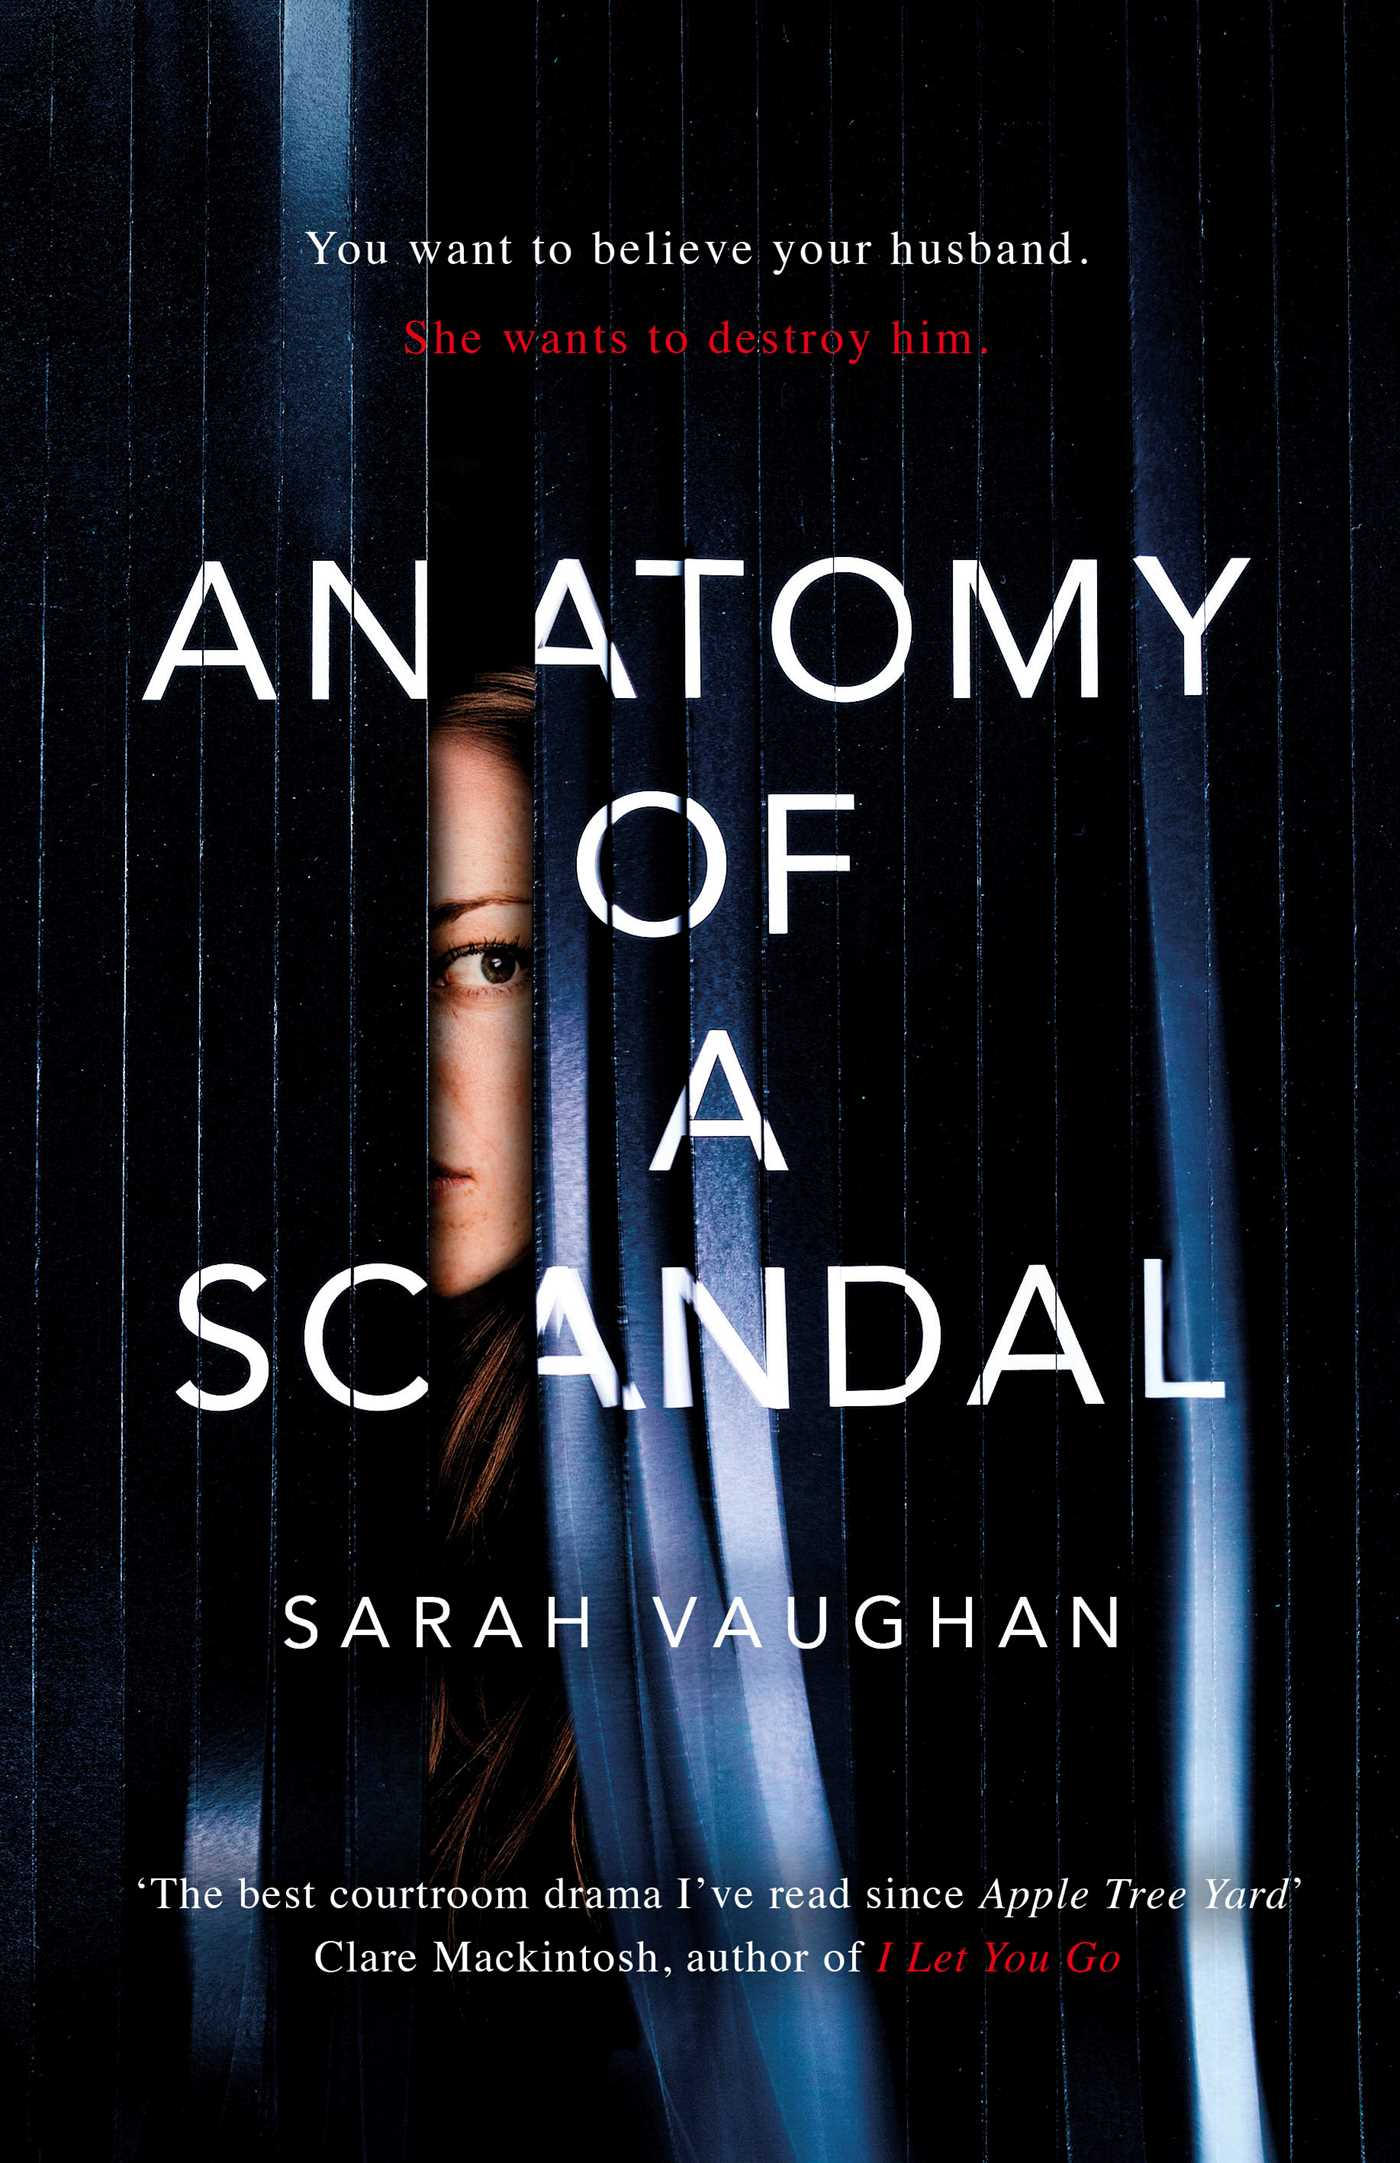 Anatomy of a scandal 9781471165009 hr